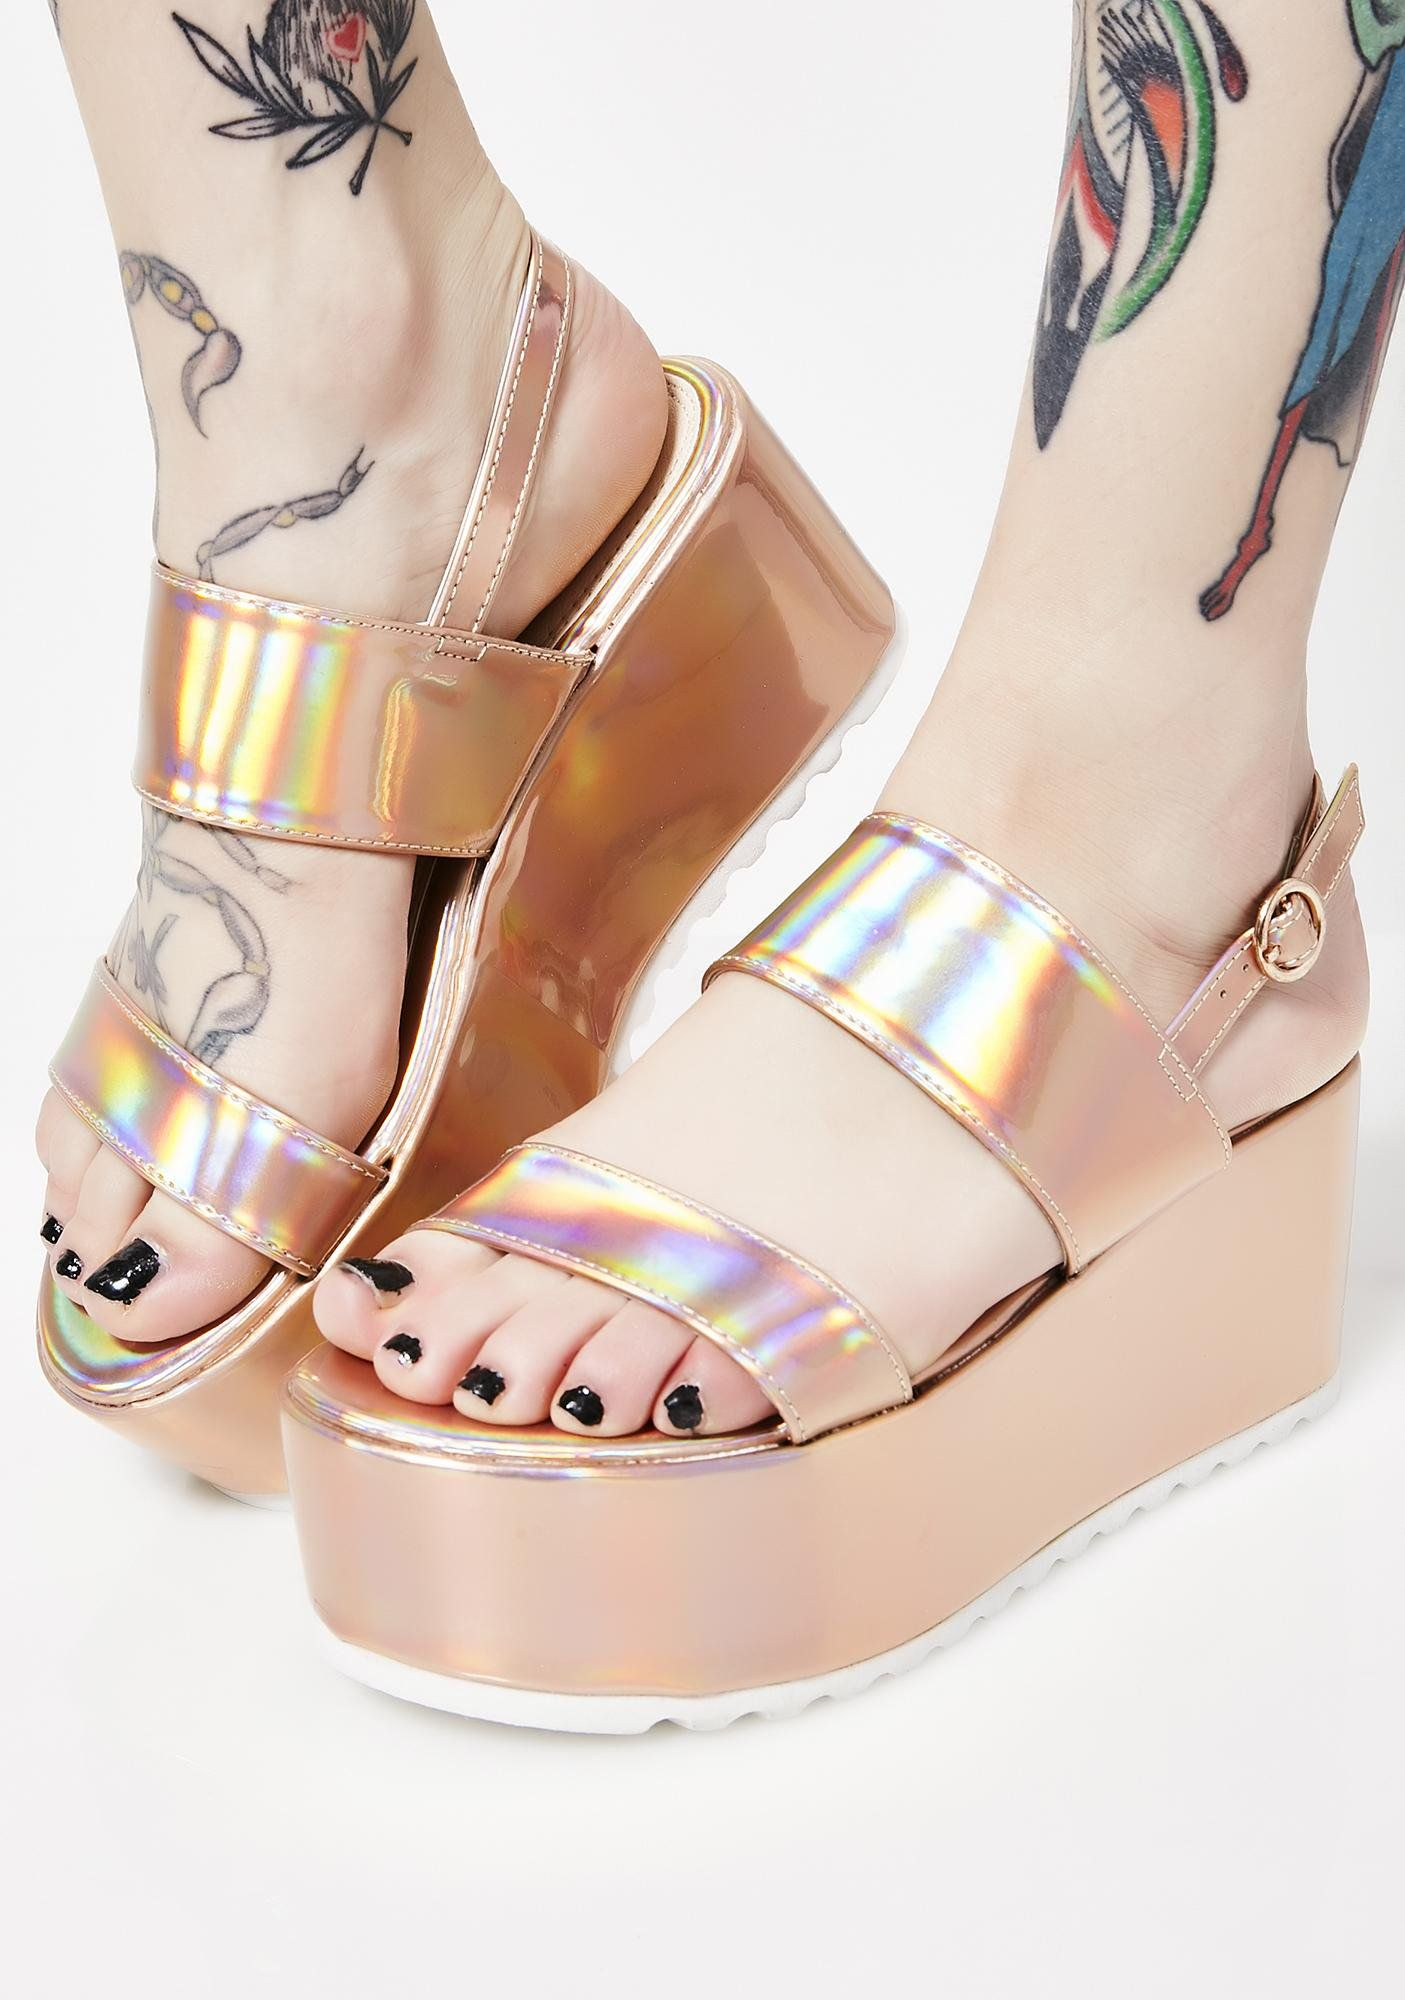 5497aaaead2a61 Rosé Cosmic Bae Of Light Hologram Platforms will have ya walkin  on  rainbowz. Keep it lit in these super sikk platform sandals that are treaded  with a back ...